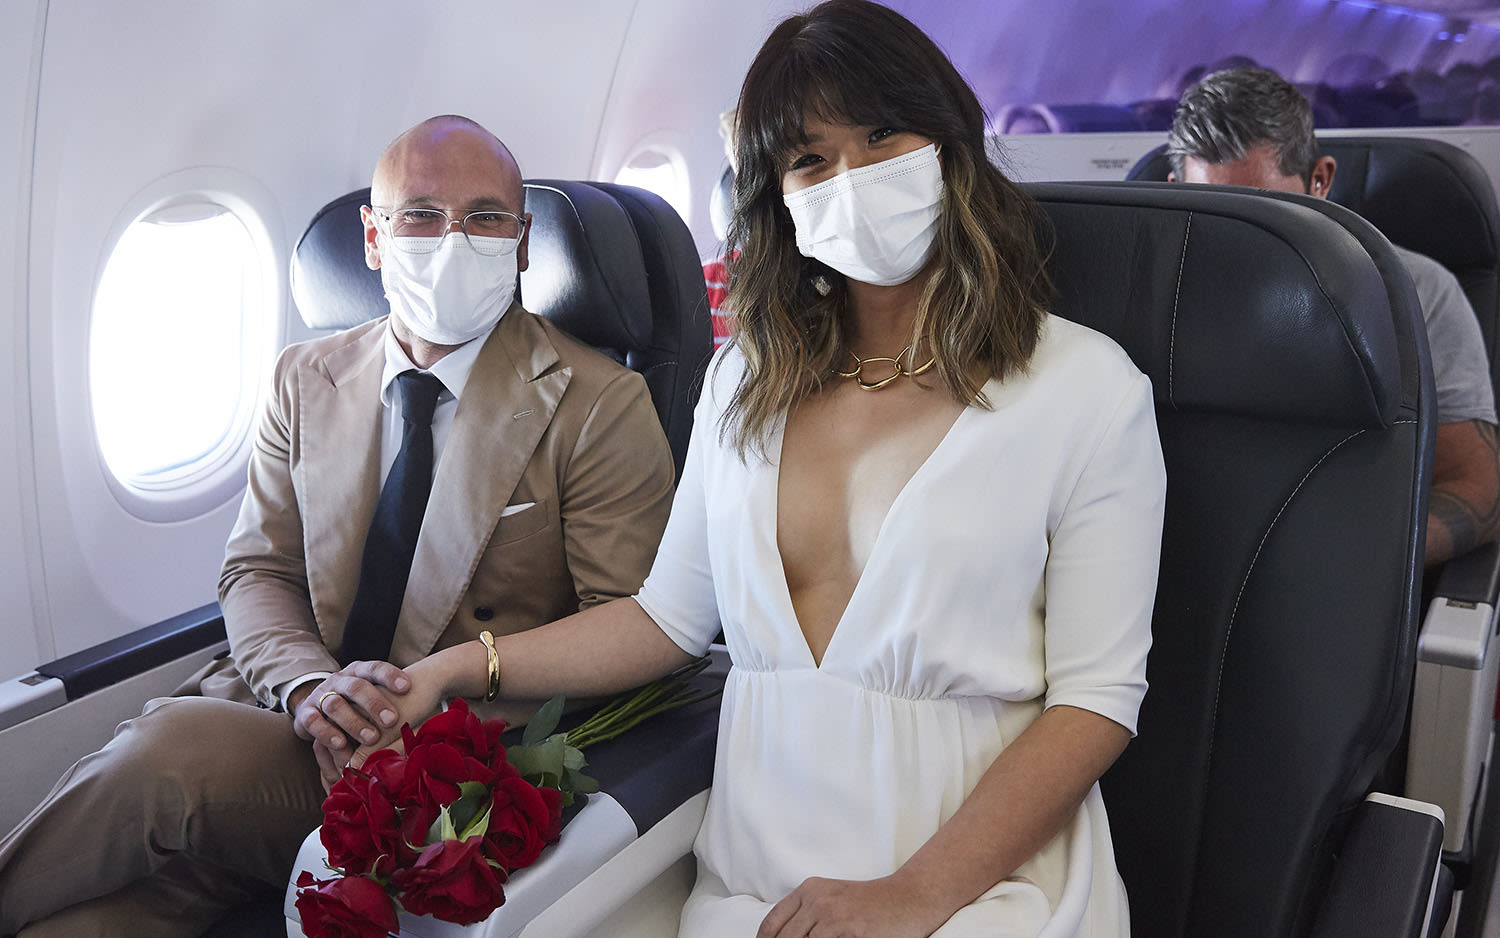 Luke and Elaine Serdar hold hands as they sit on the aircraft after their onboard wedding